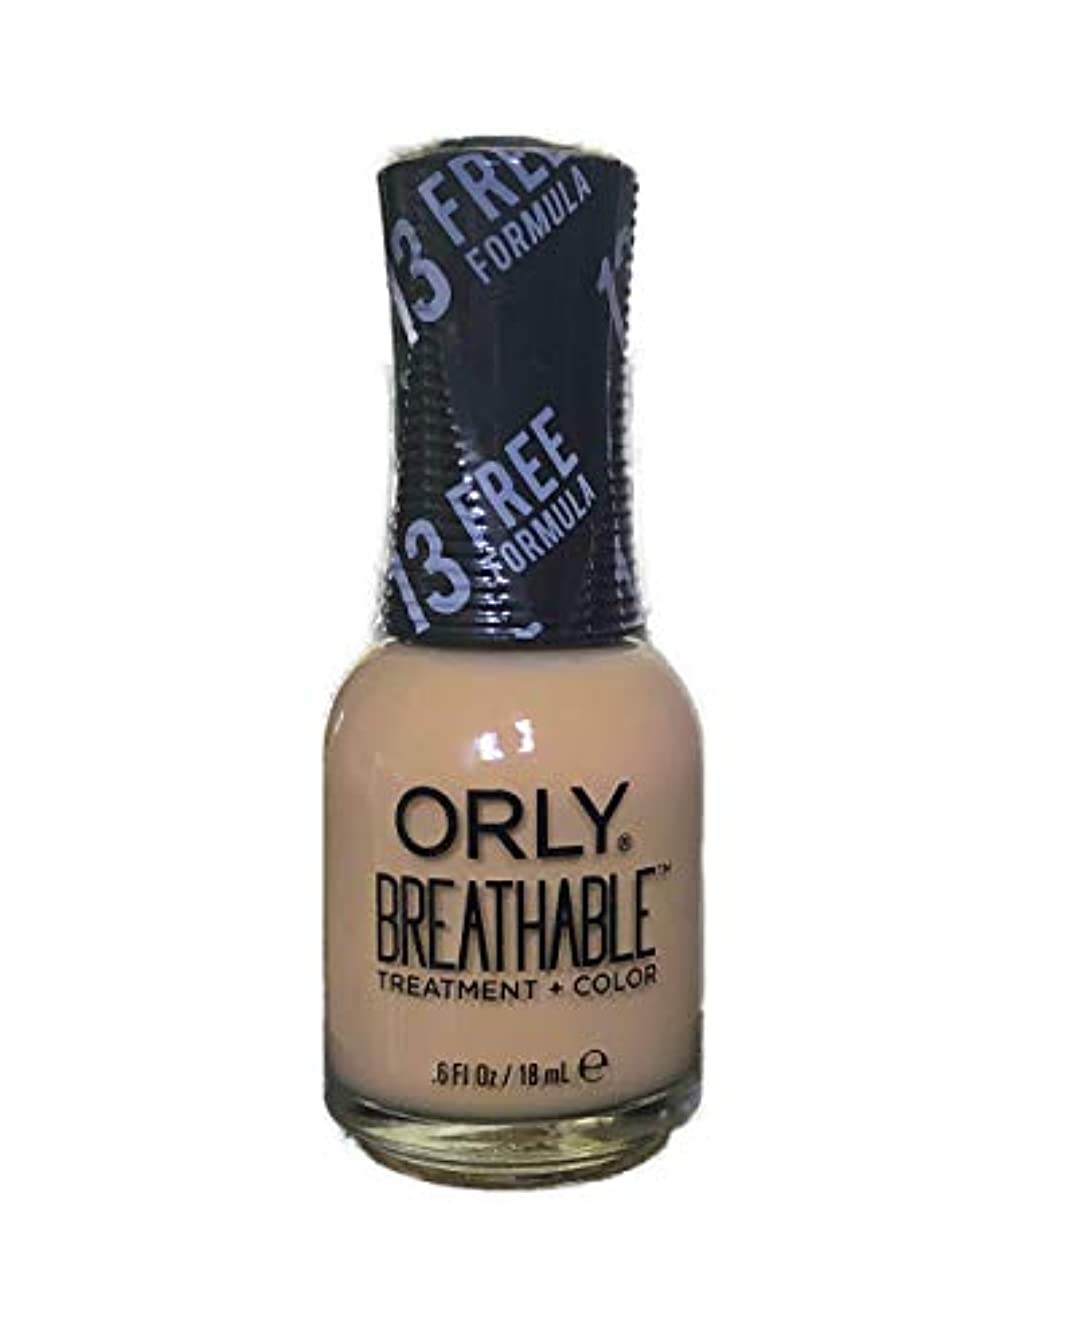 スポーツをするふざけたモンキーOrly Breathable Nail Lacquer - Treatment + Color - You Go Girl - 0.6 oz / 18 mL